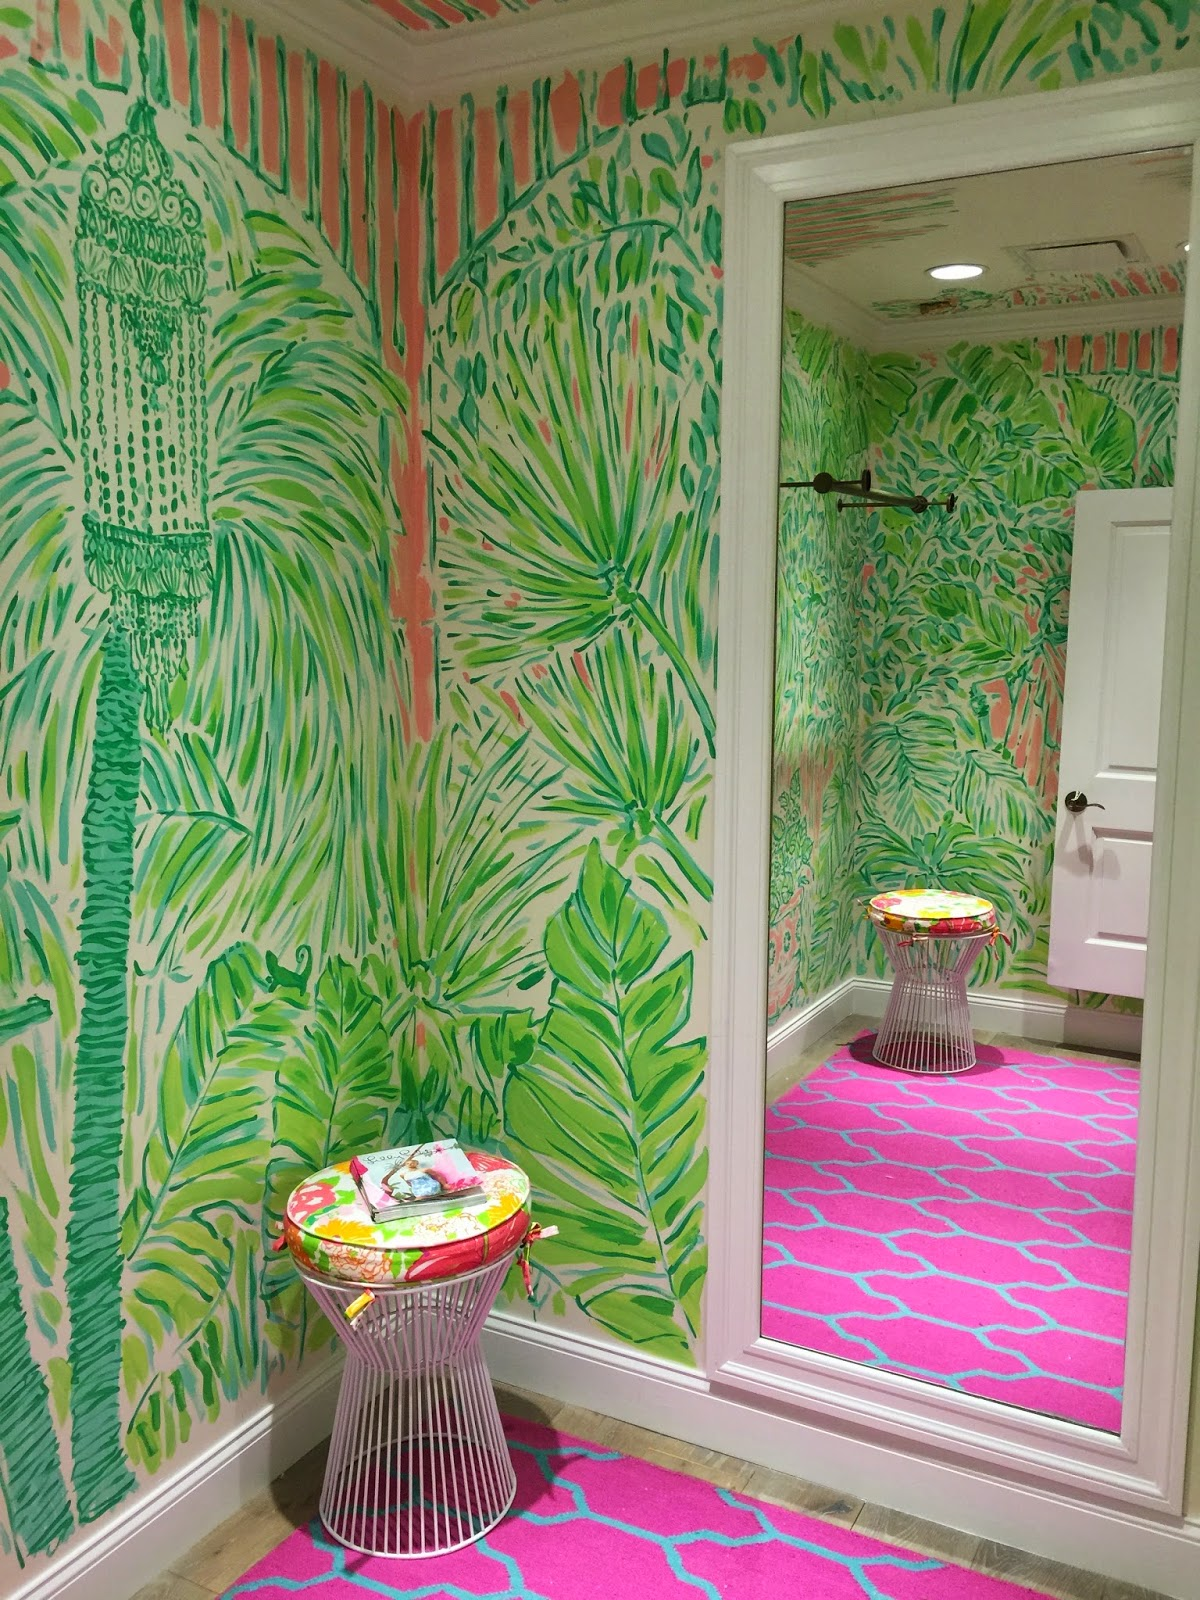 Lilly Pulitzer: Palm Beach Gardens - Devon Alana